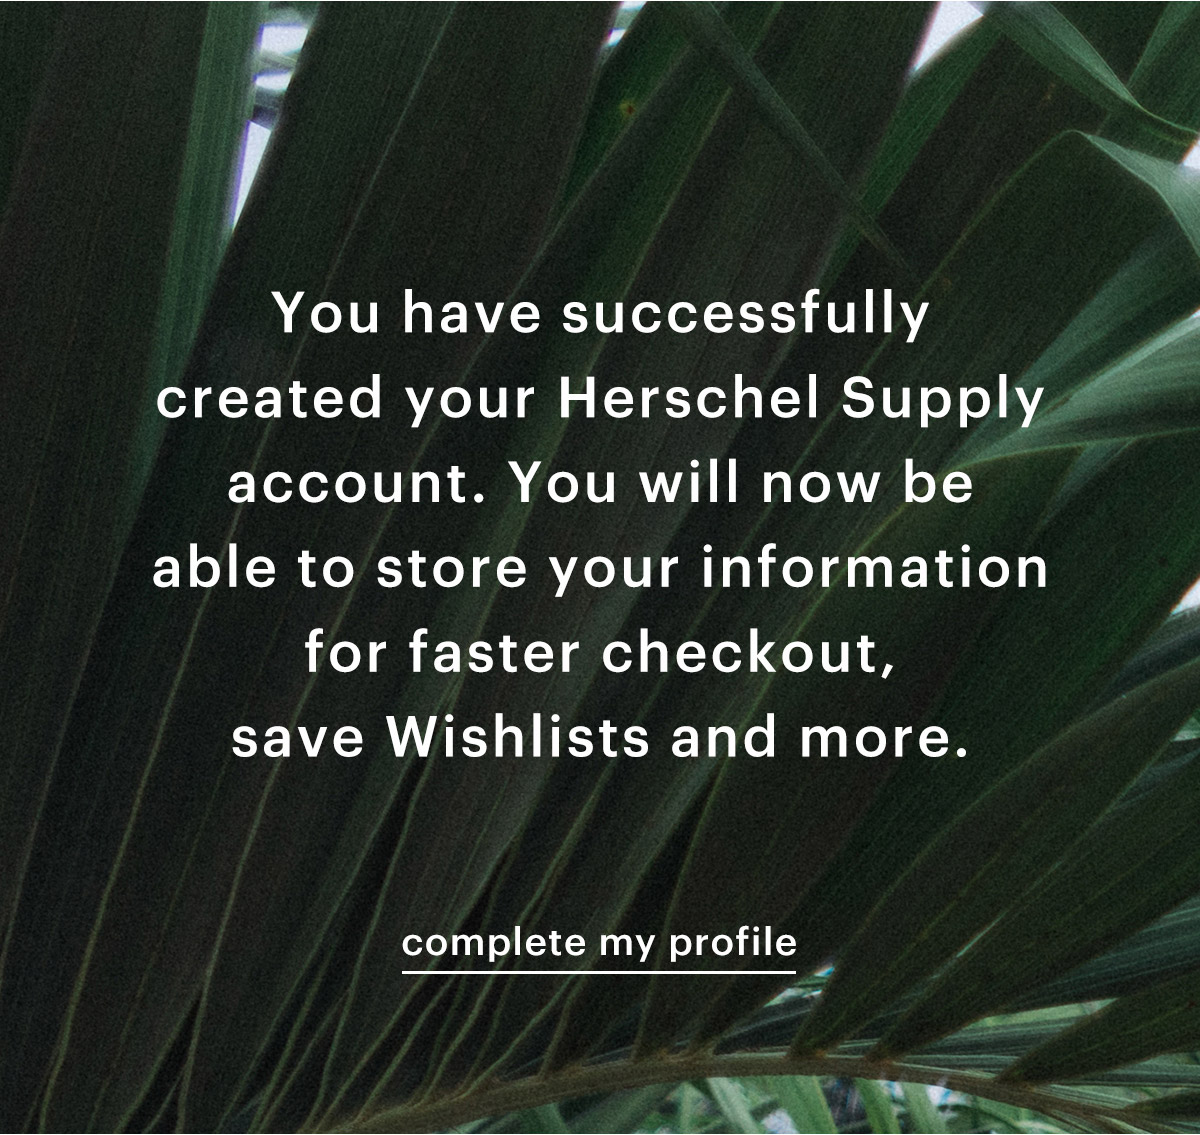 You have successfully created your Herschel Supply account. You will now be able to store your information for faster checkout, save Wishlists and more.